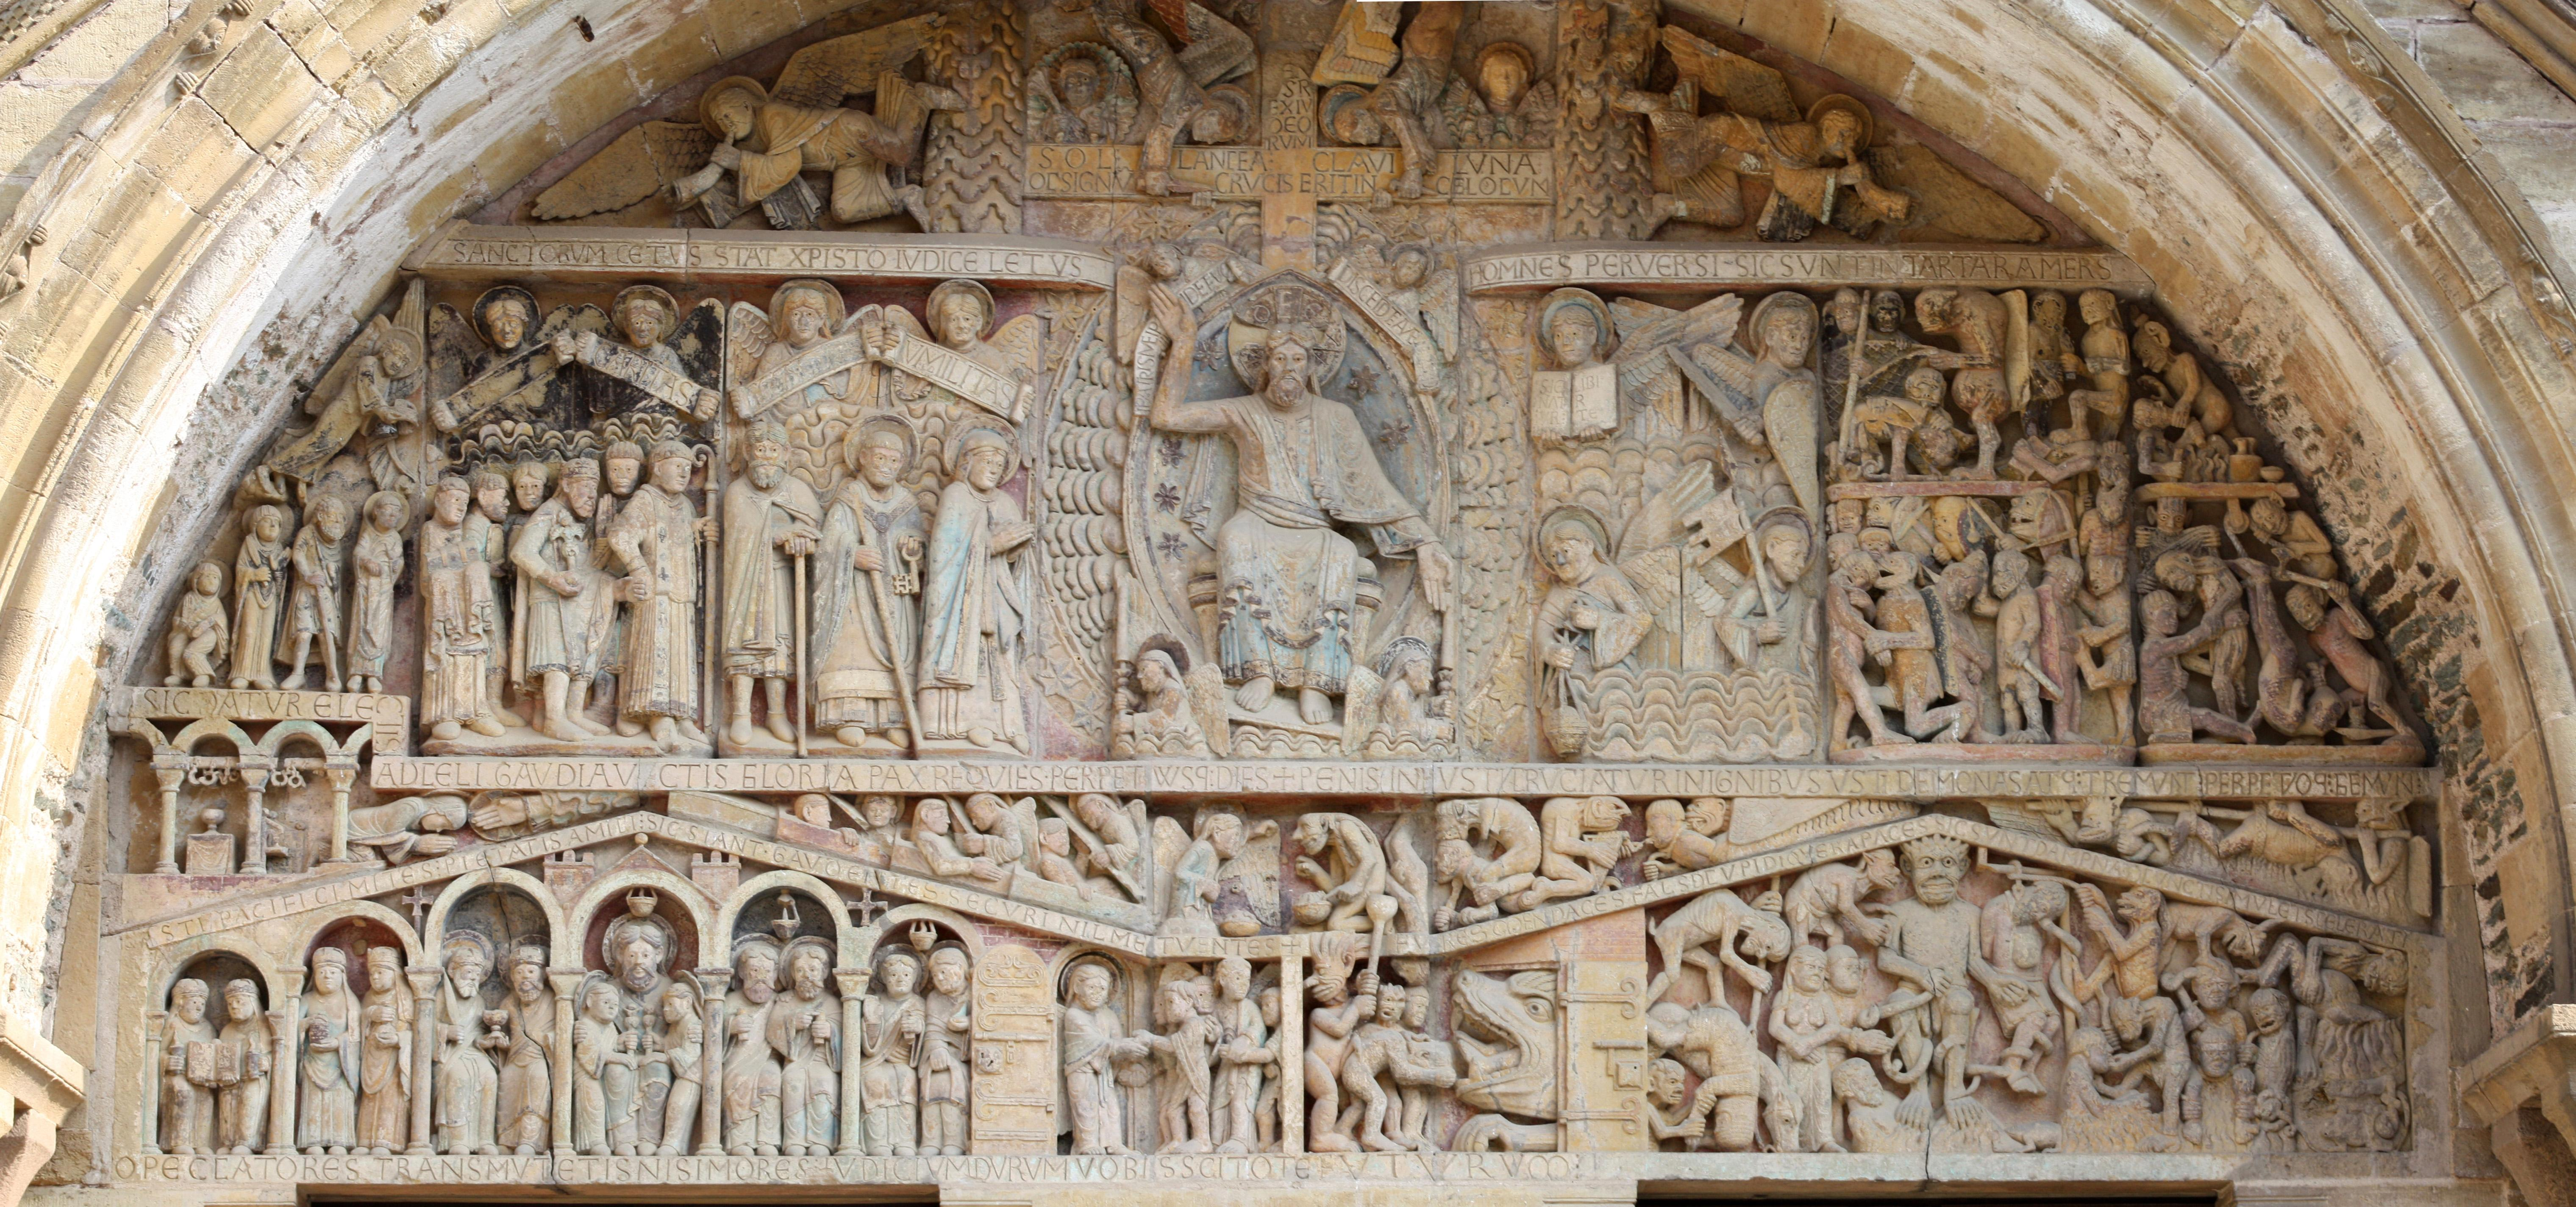 compare and contrast sainte foy and the chartres essay